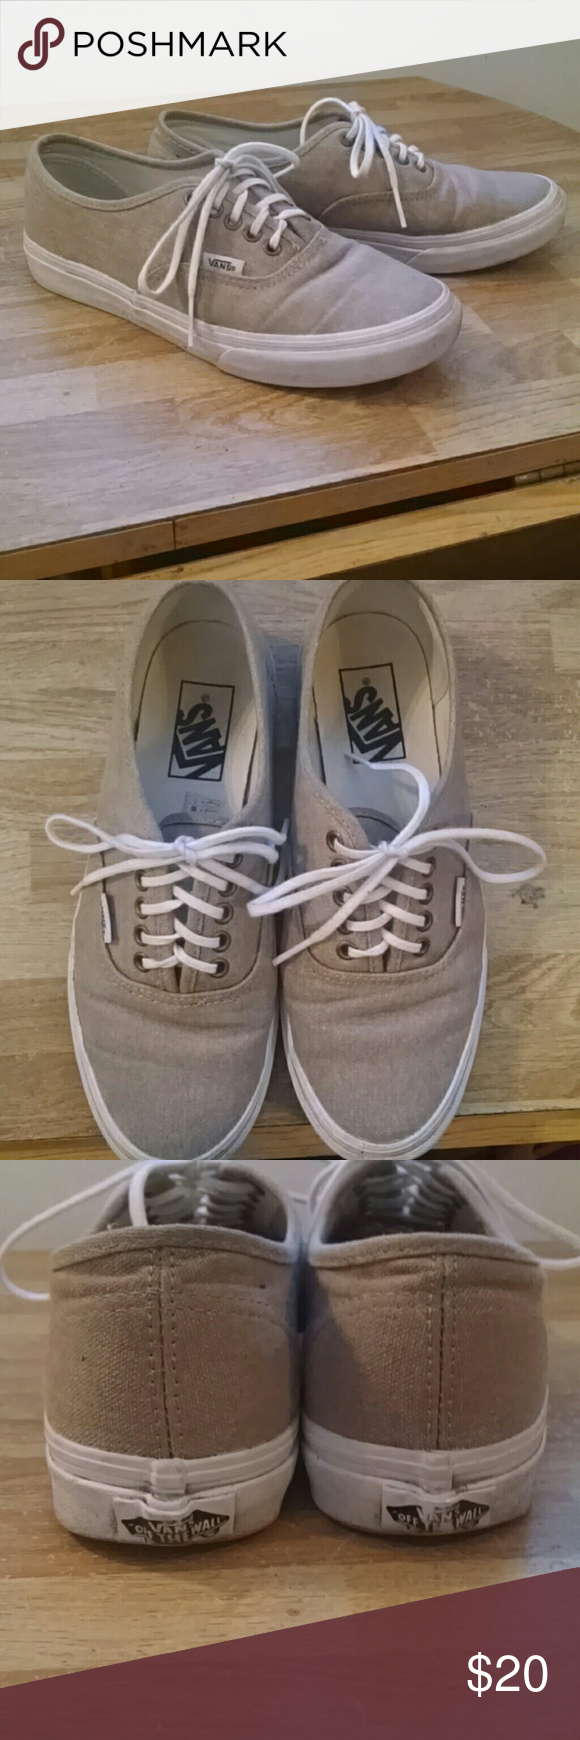 98e336eb79 Vans Canvas Shoe Gently worn. Ton of love left. Size 8 women s or 6.5 men s.  Vans Shoes Sneakers